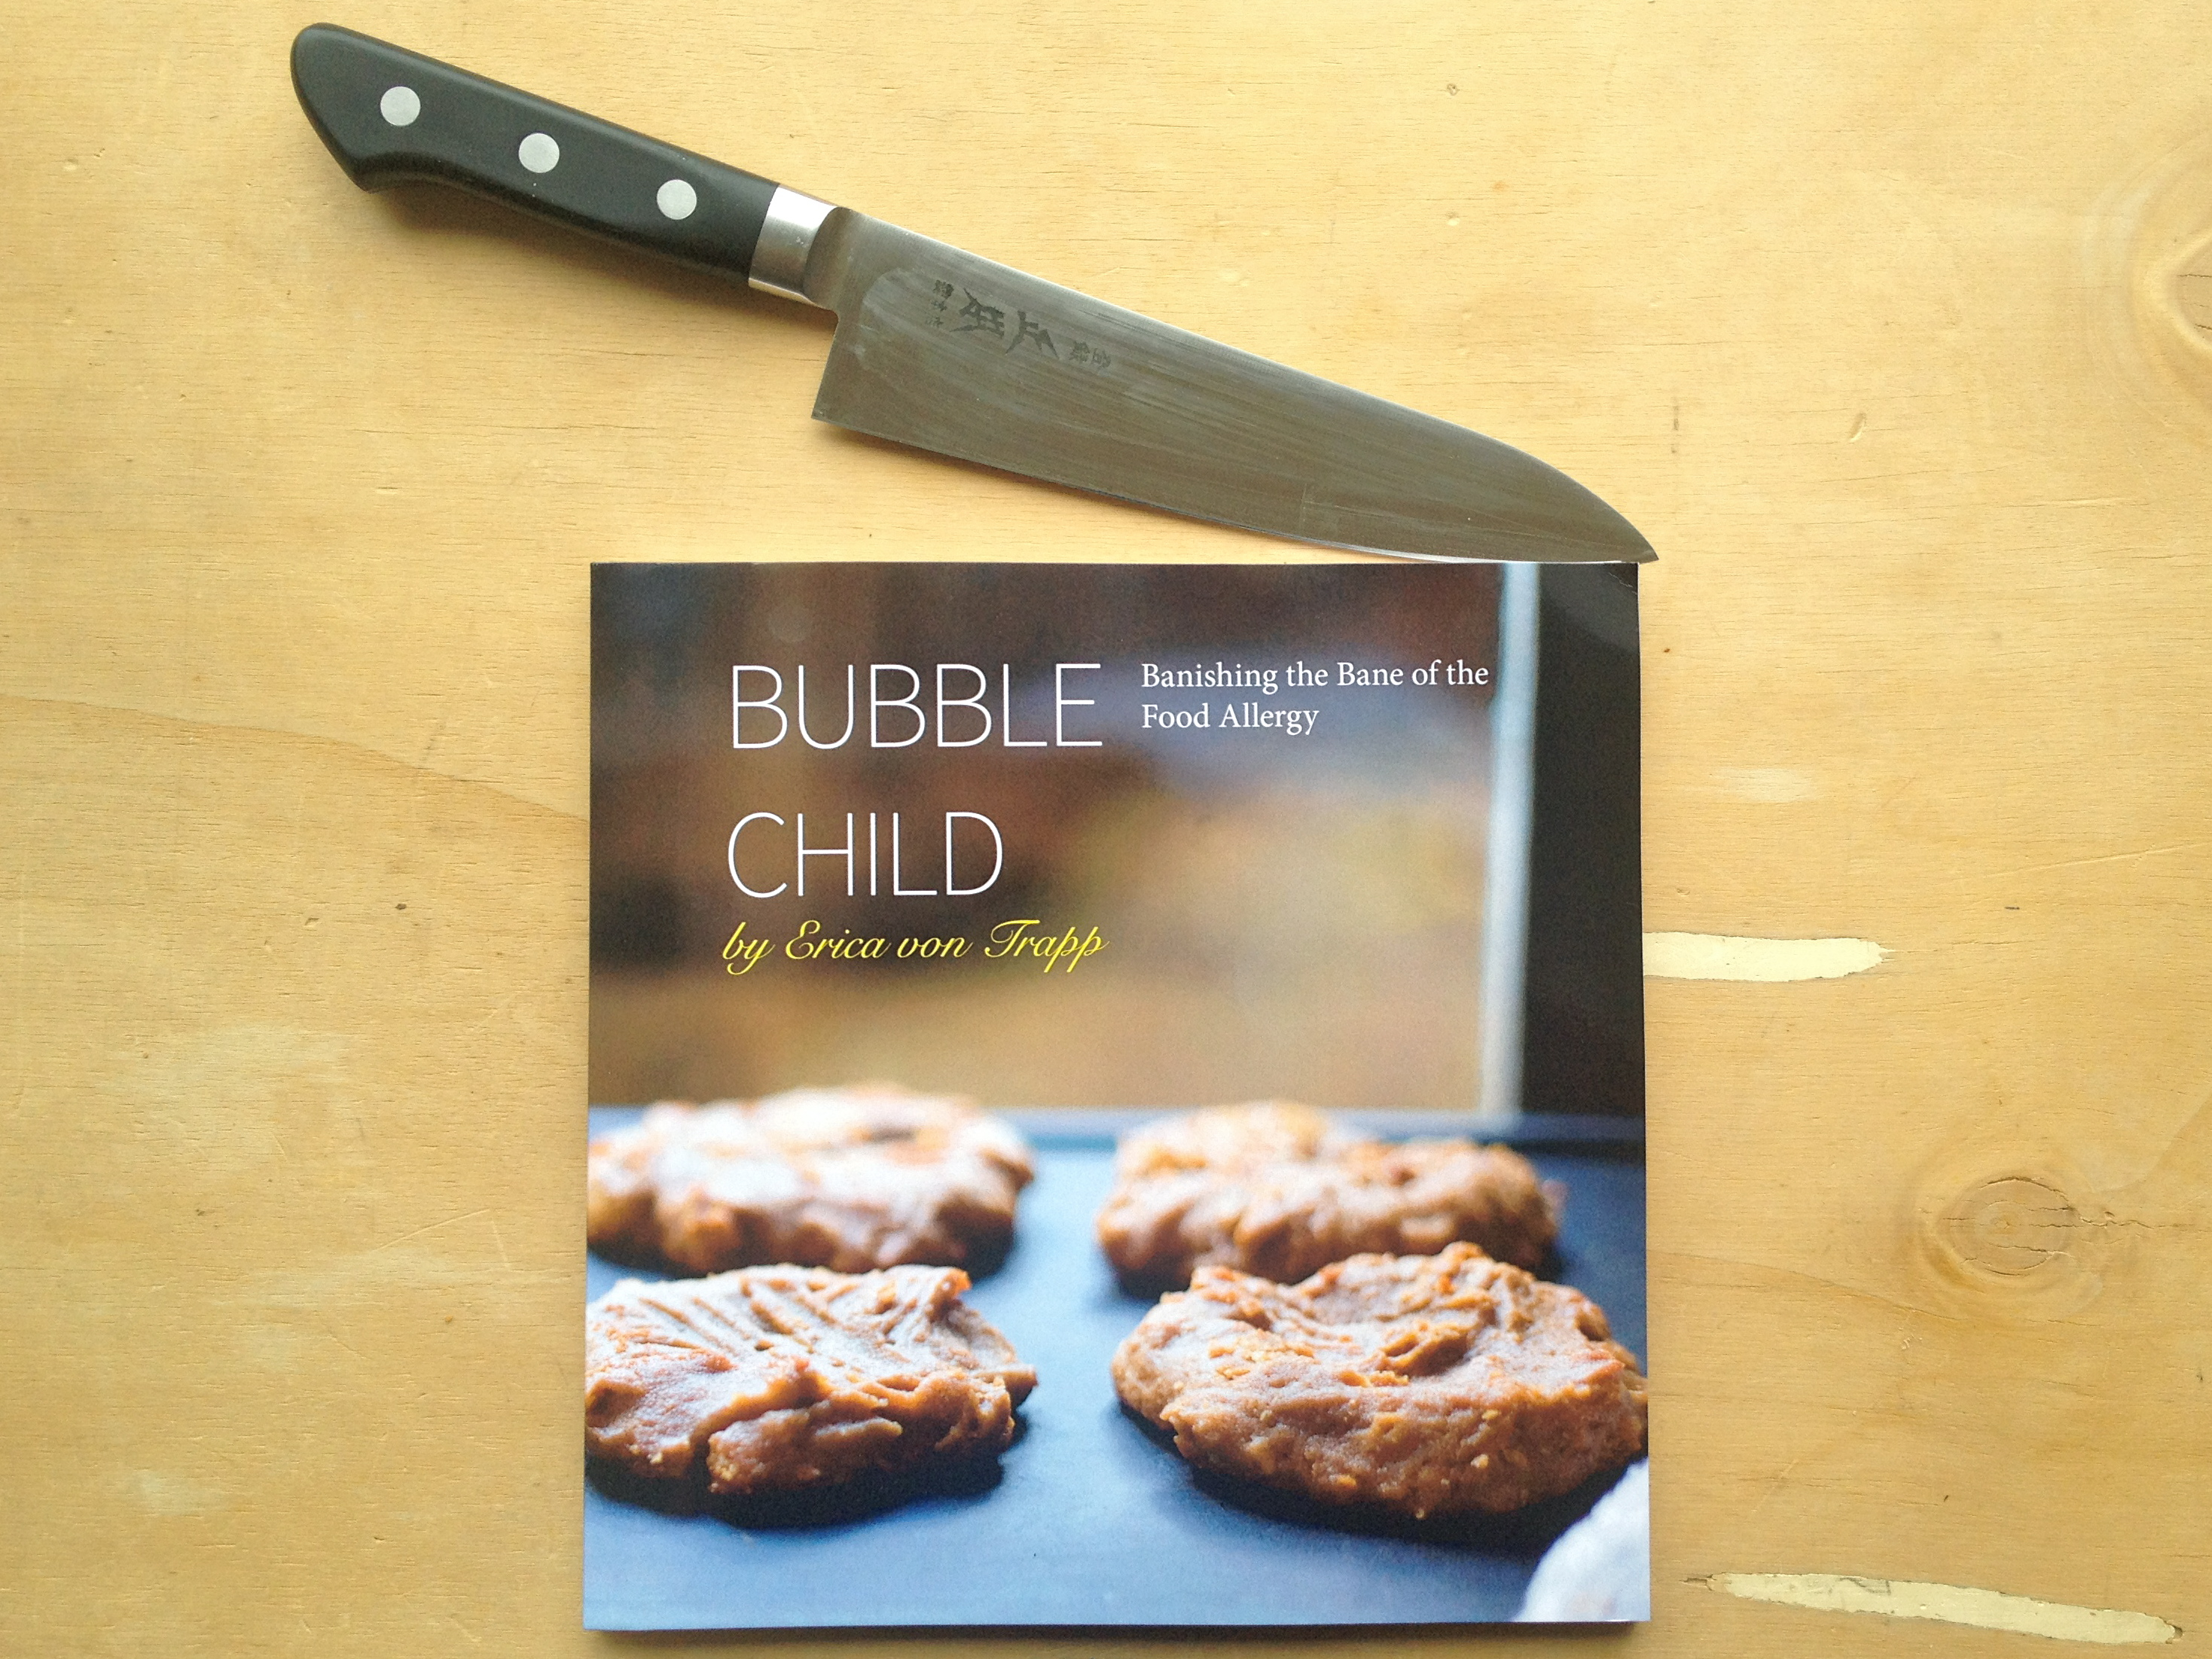 The Bubble Child cookbook coming soon to stores and Amazon.com.